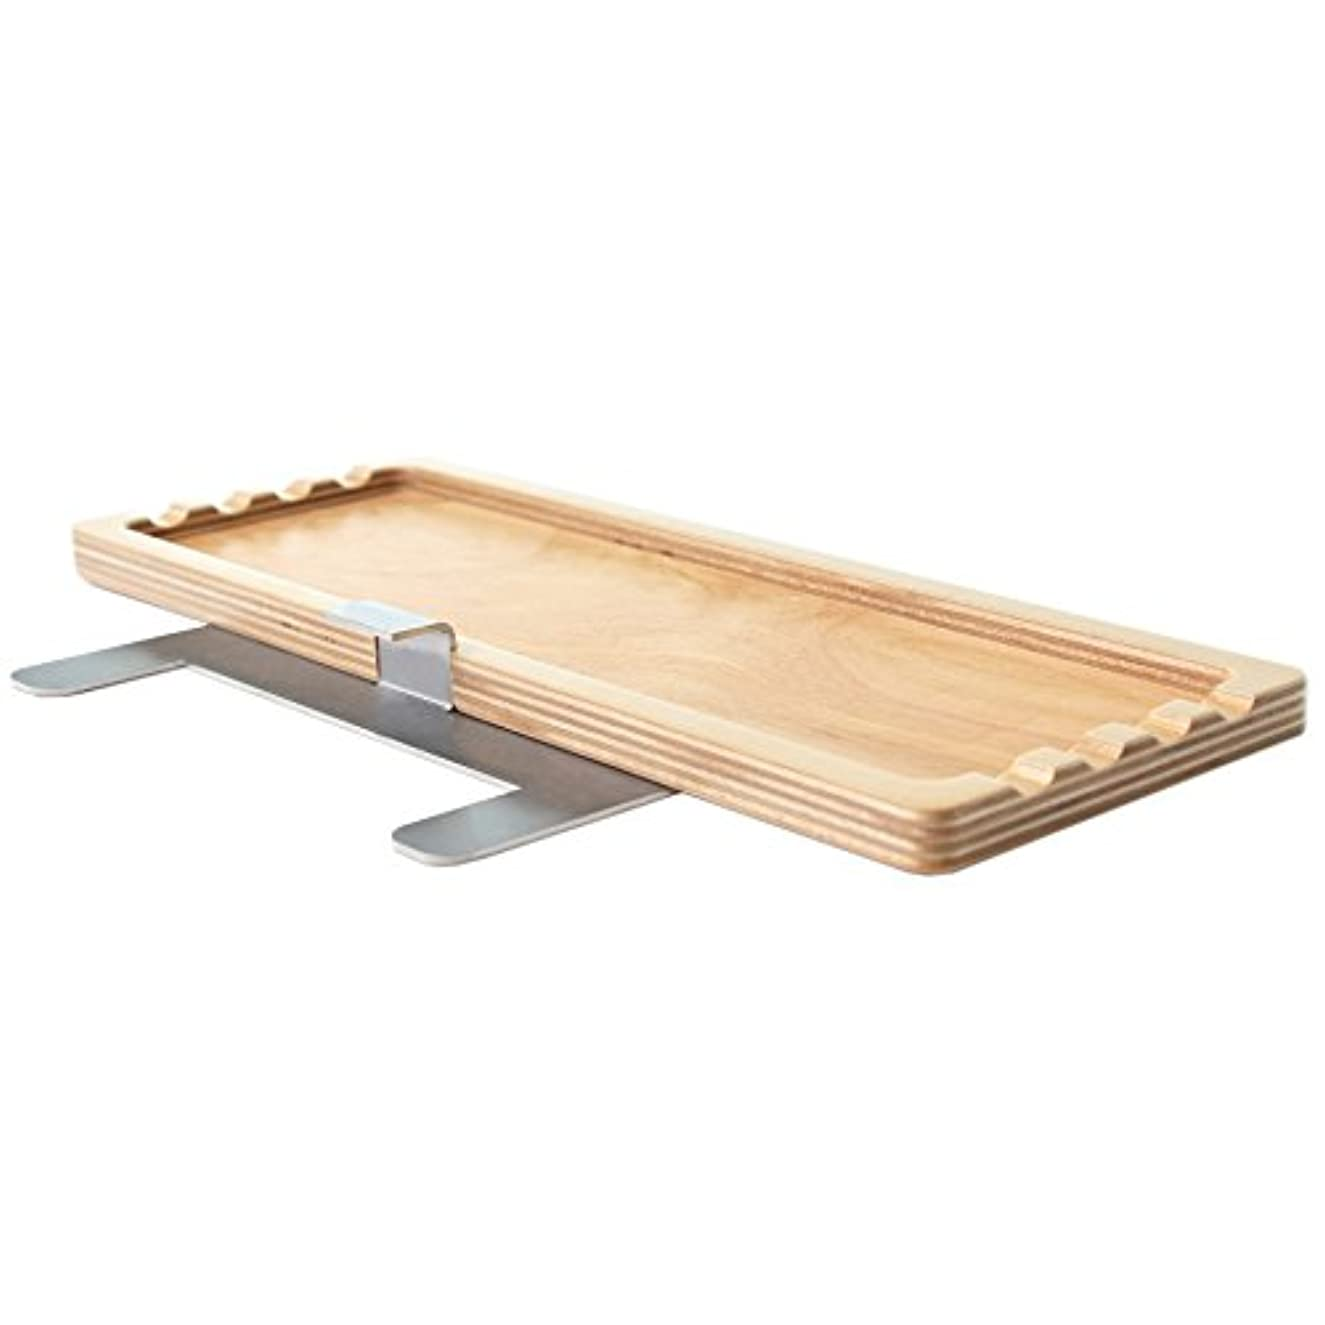 u.go Plein Air | Anywhere Side Tray (4